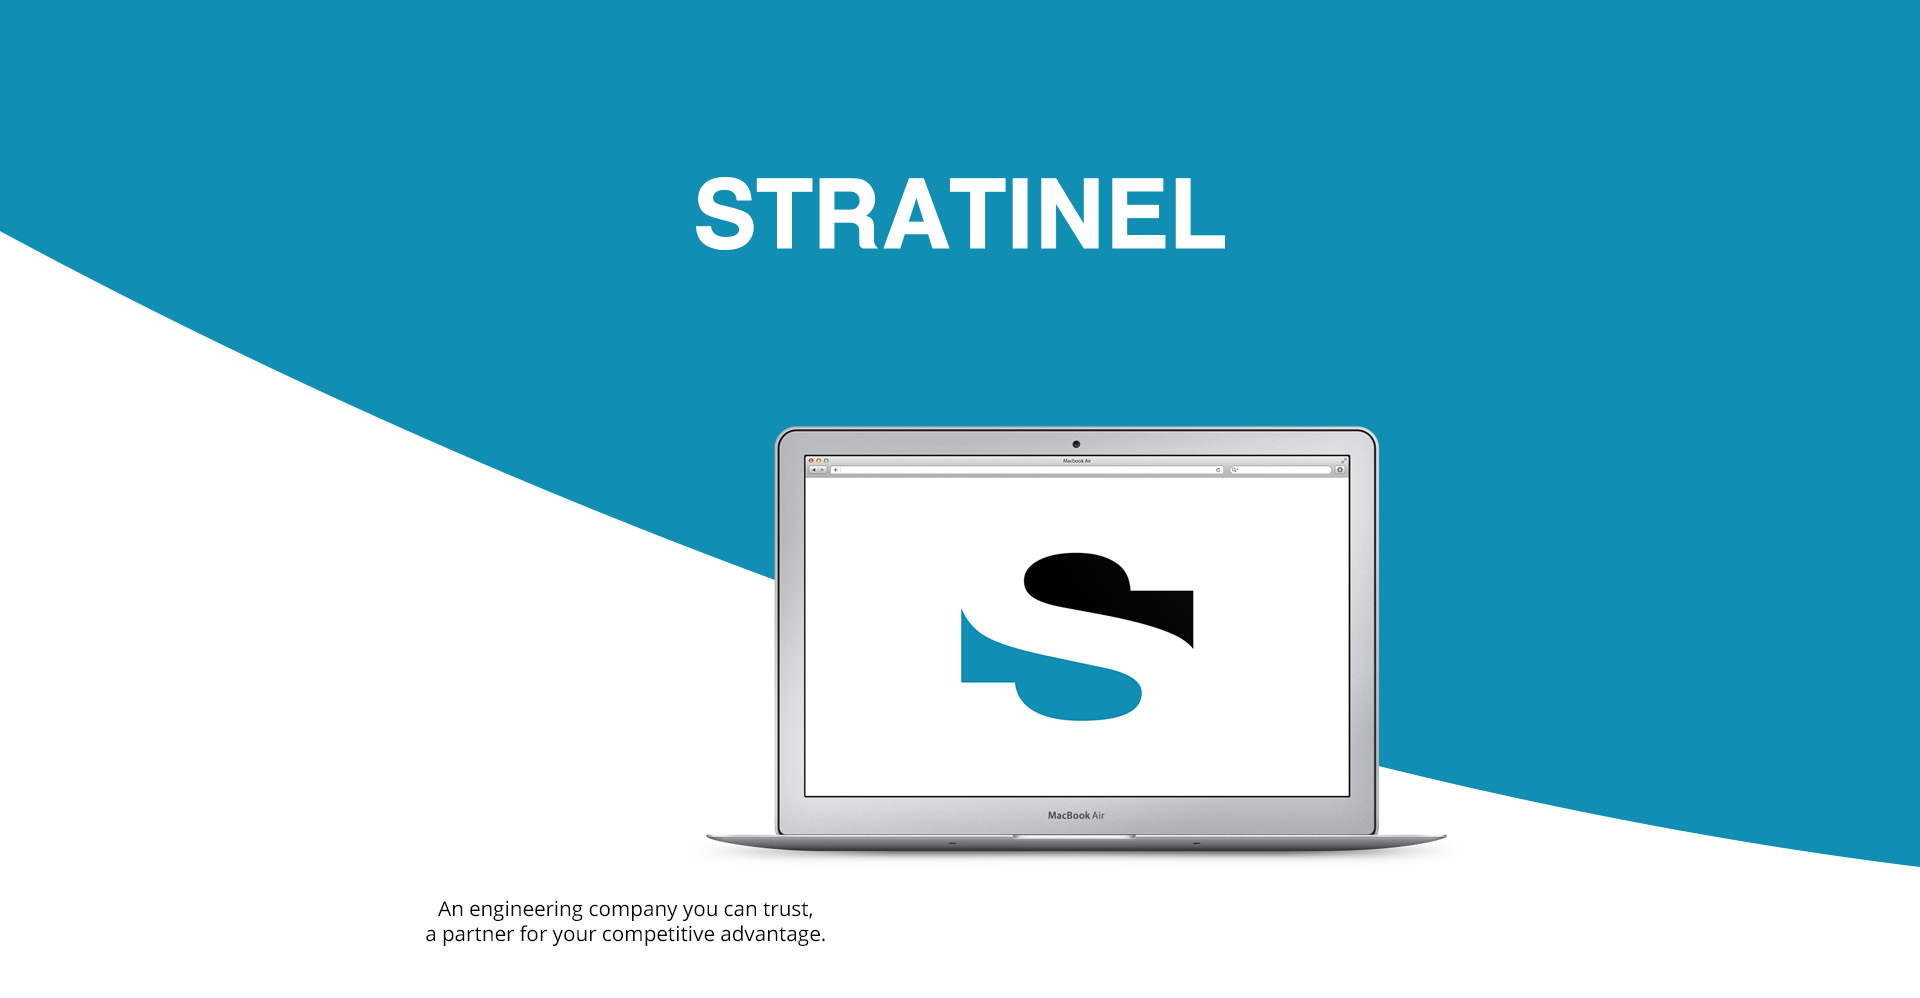 Logo Design for Oil and Gas Company STRATINEL